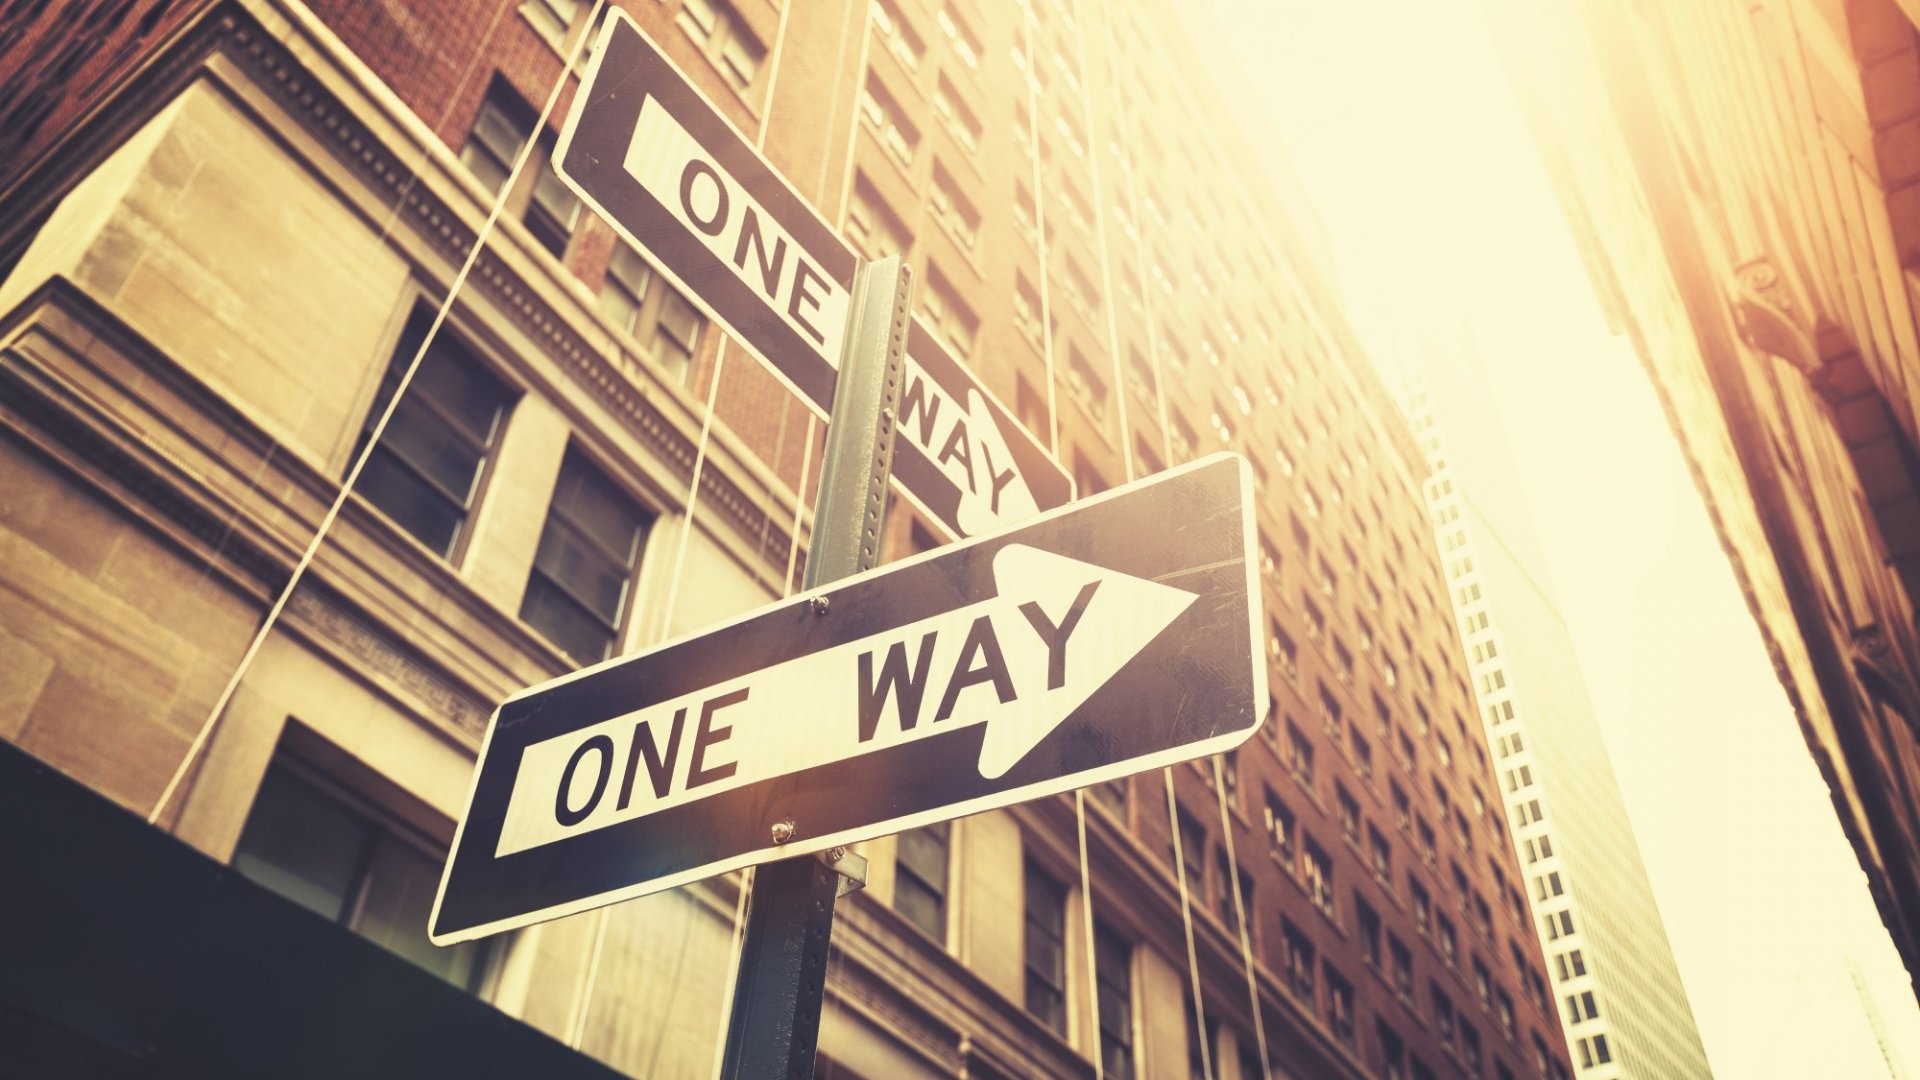 Are your employees going down a one way street, or do they engage with your company?